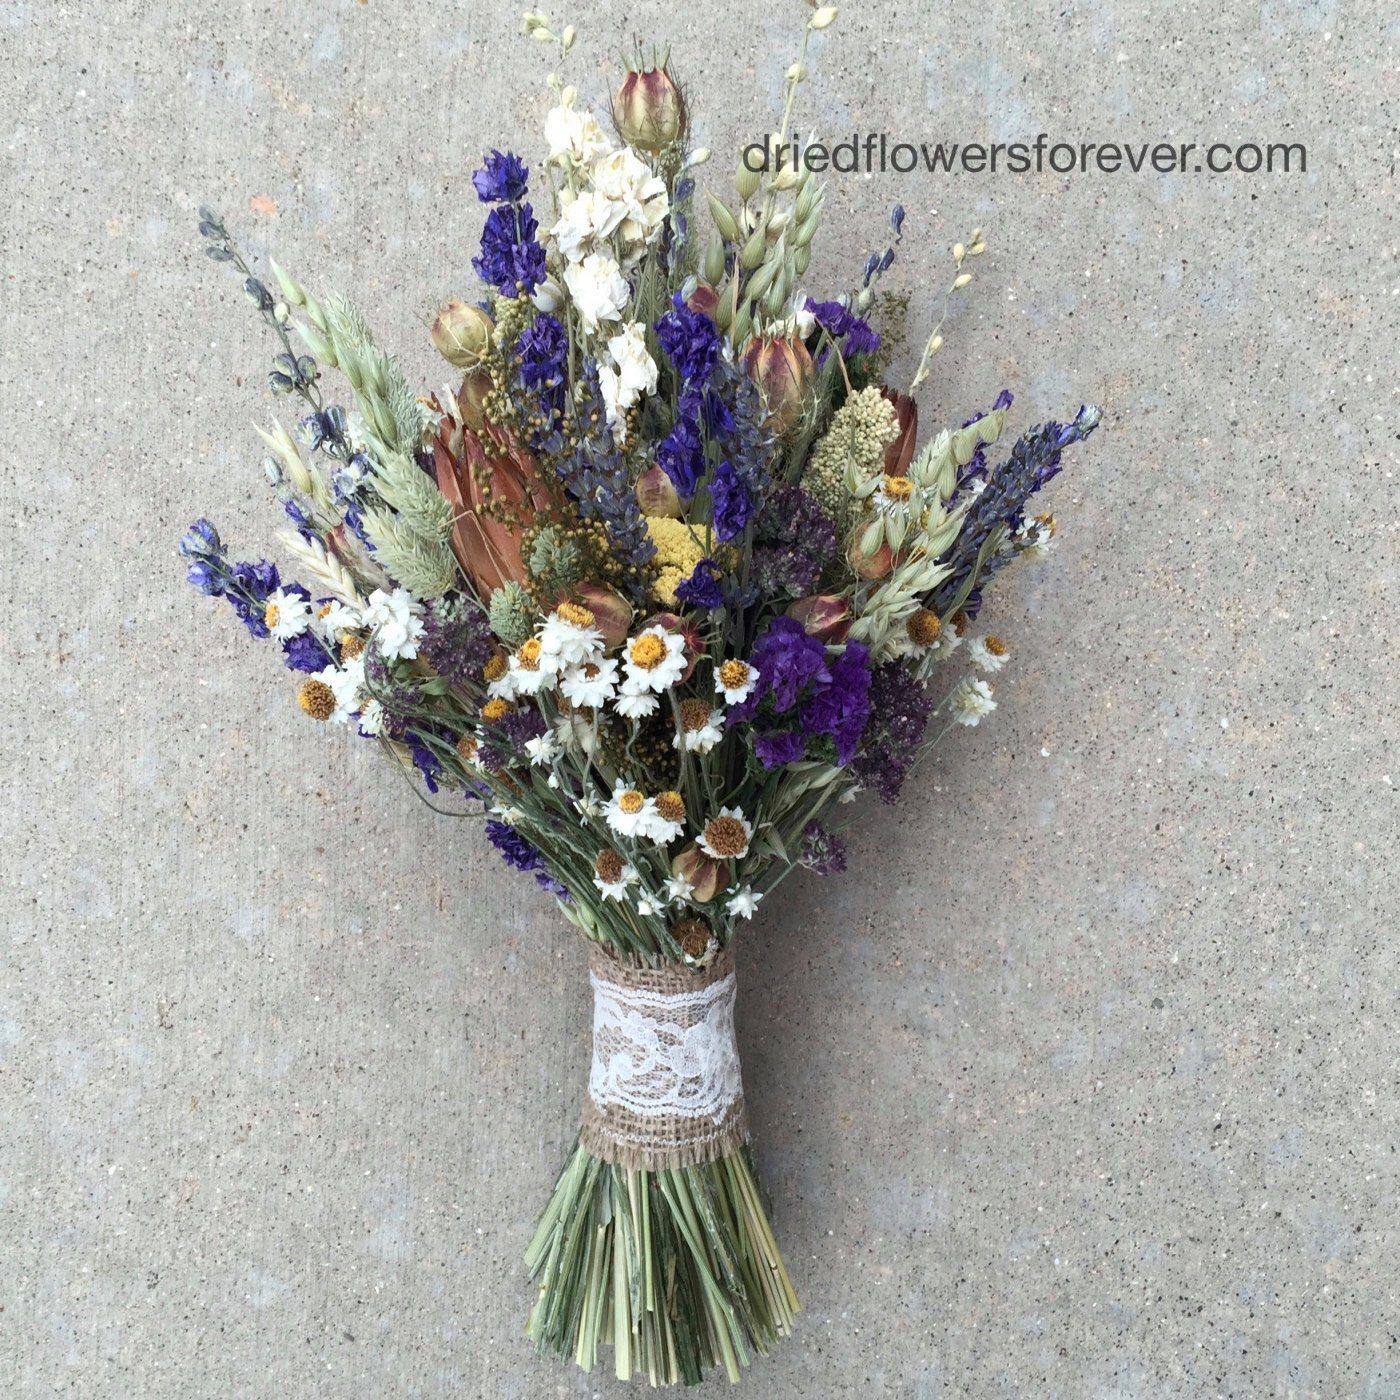 Purple Dried Flower Wedding Bouquet Natural Rustic Preserved Etsy Bridal Bouquet Green Flower Bouquet Wedding Wedding Bouquets